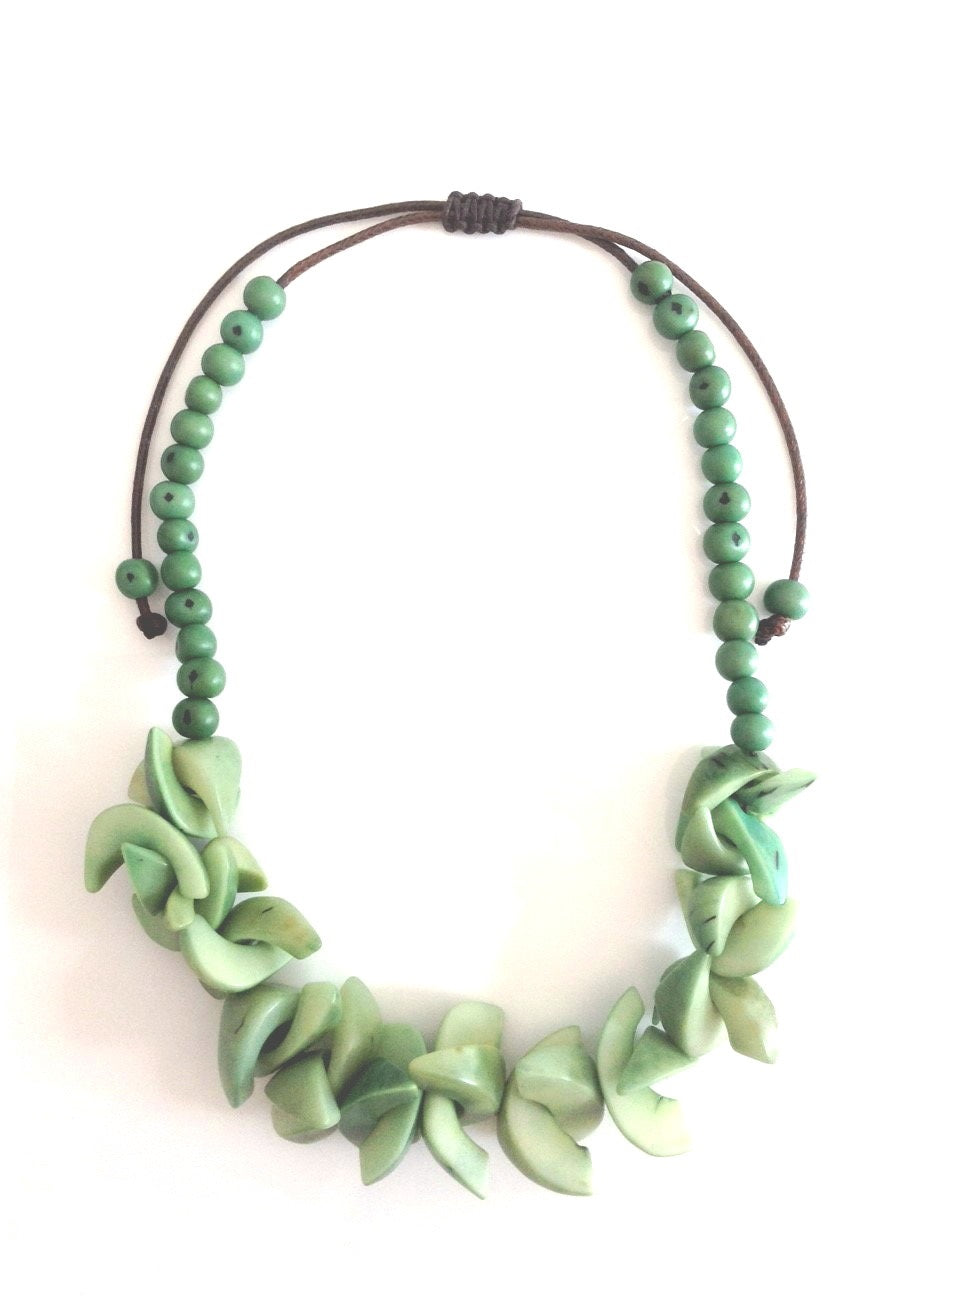 Chilli Peppers Necklace - Green